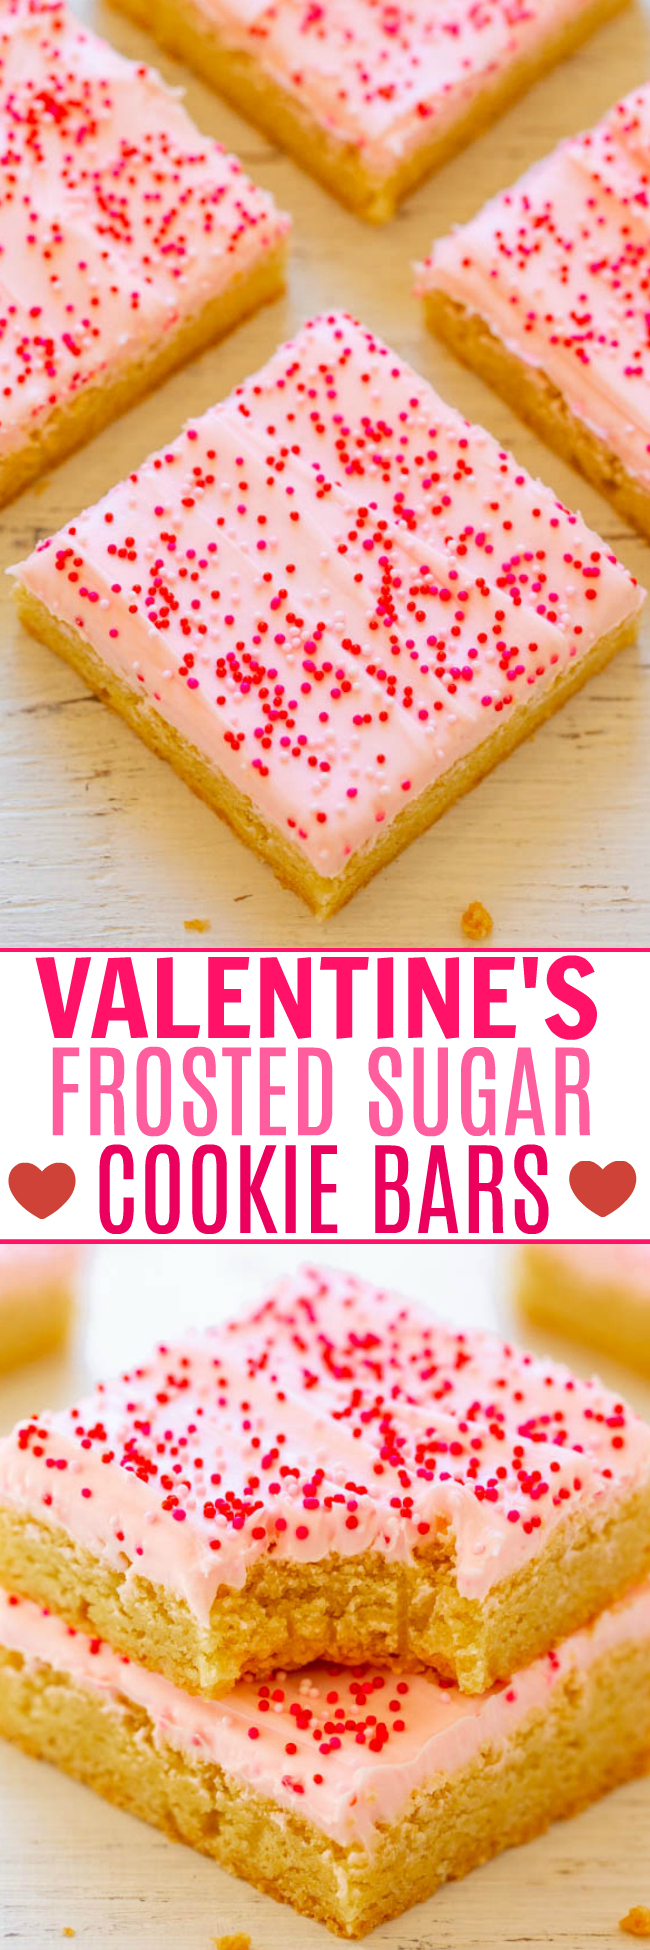 Valentine's Frosted Sugar Cookie Bars - Sugar cookie bars are so much FASTER AND EASIER than making sugar cookies!! The sprinkles and tangy cream cheese frosting help to make the bars a PERFECT Valentine's Day treat!!